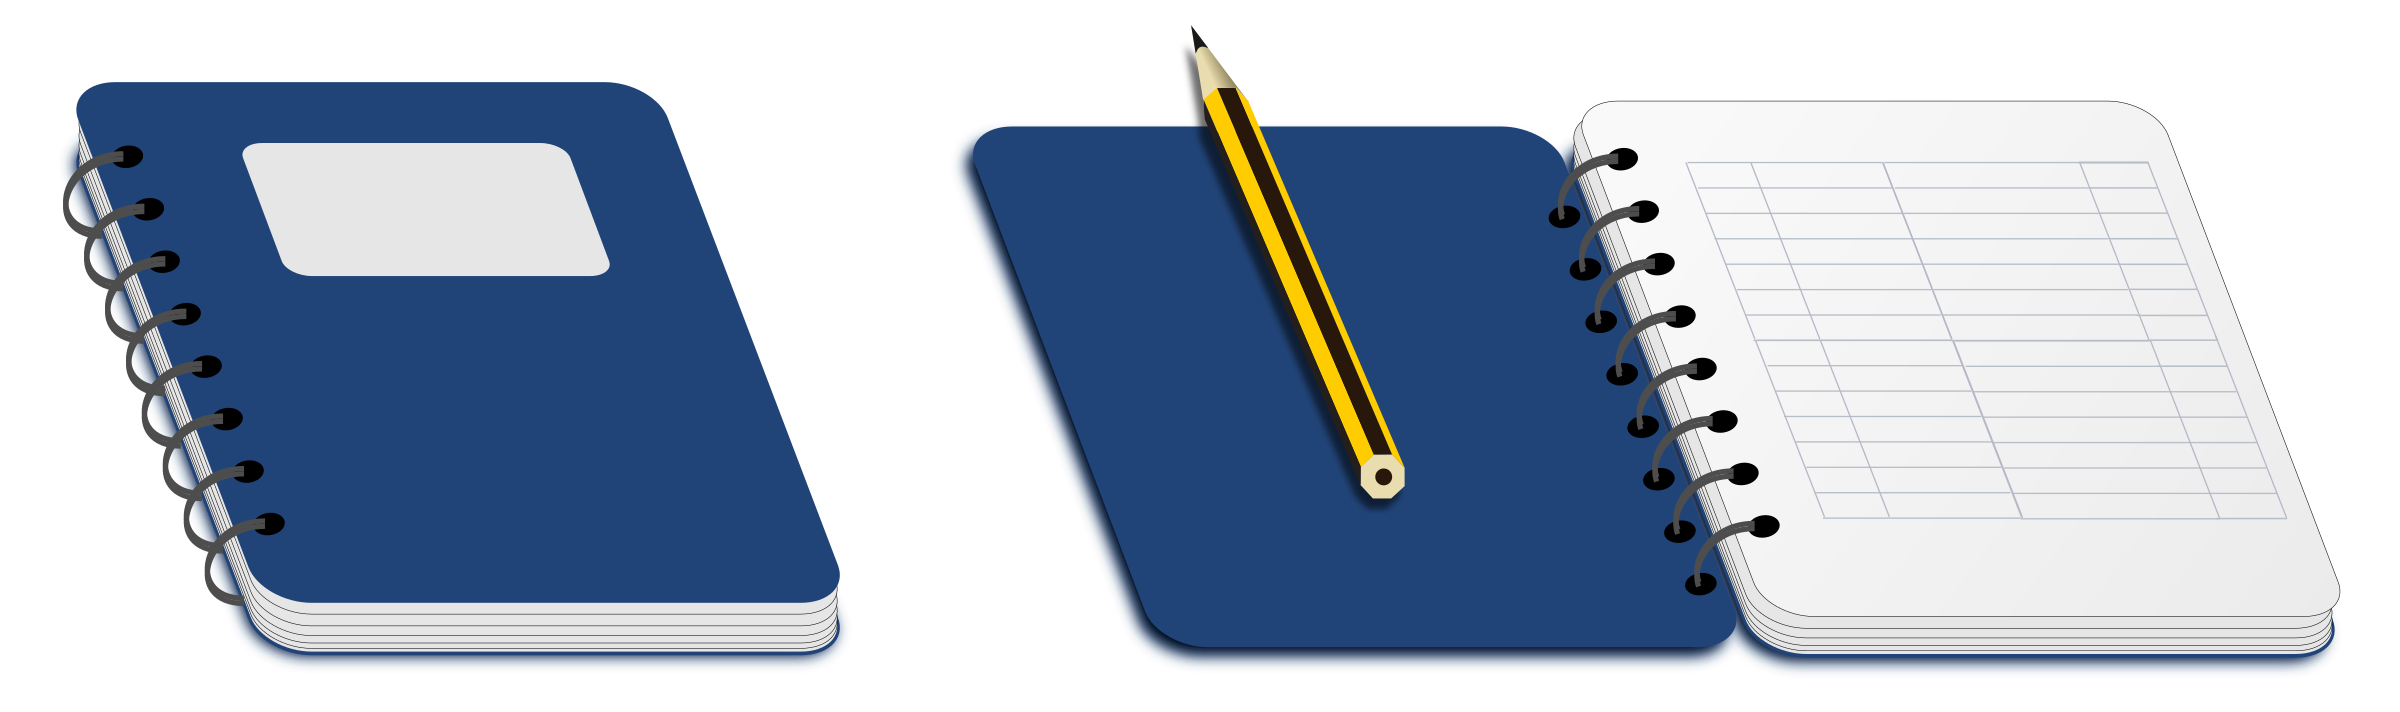 Notebook clipart pencil. Spiral with big image